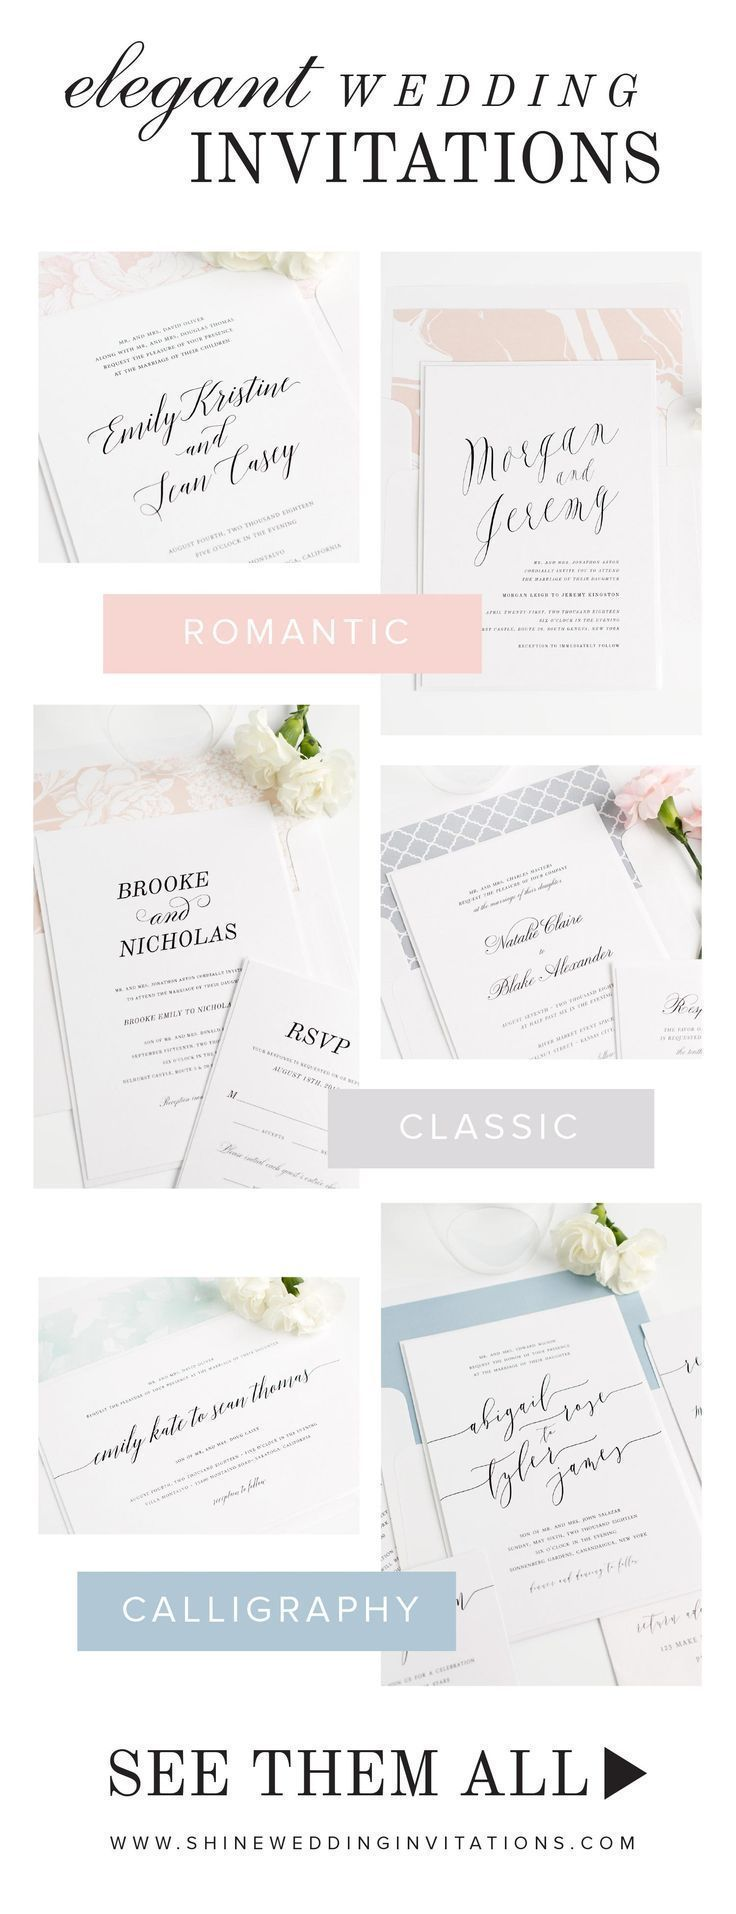 354 best Trouwkaarten / Wedding invitations images on Pinterest ...